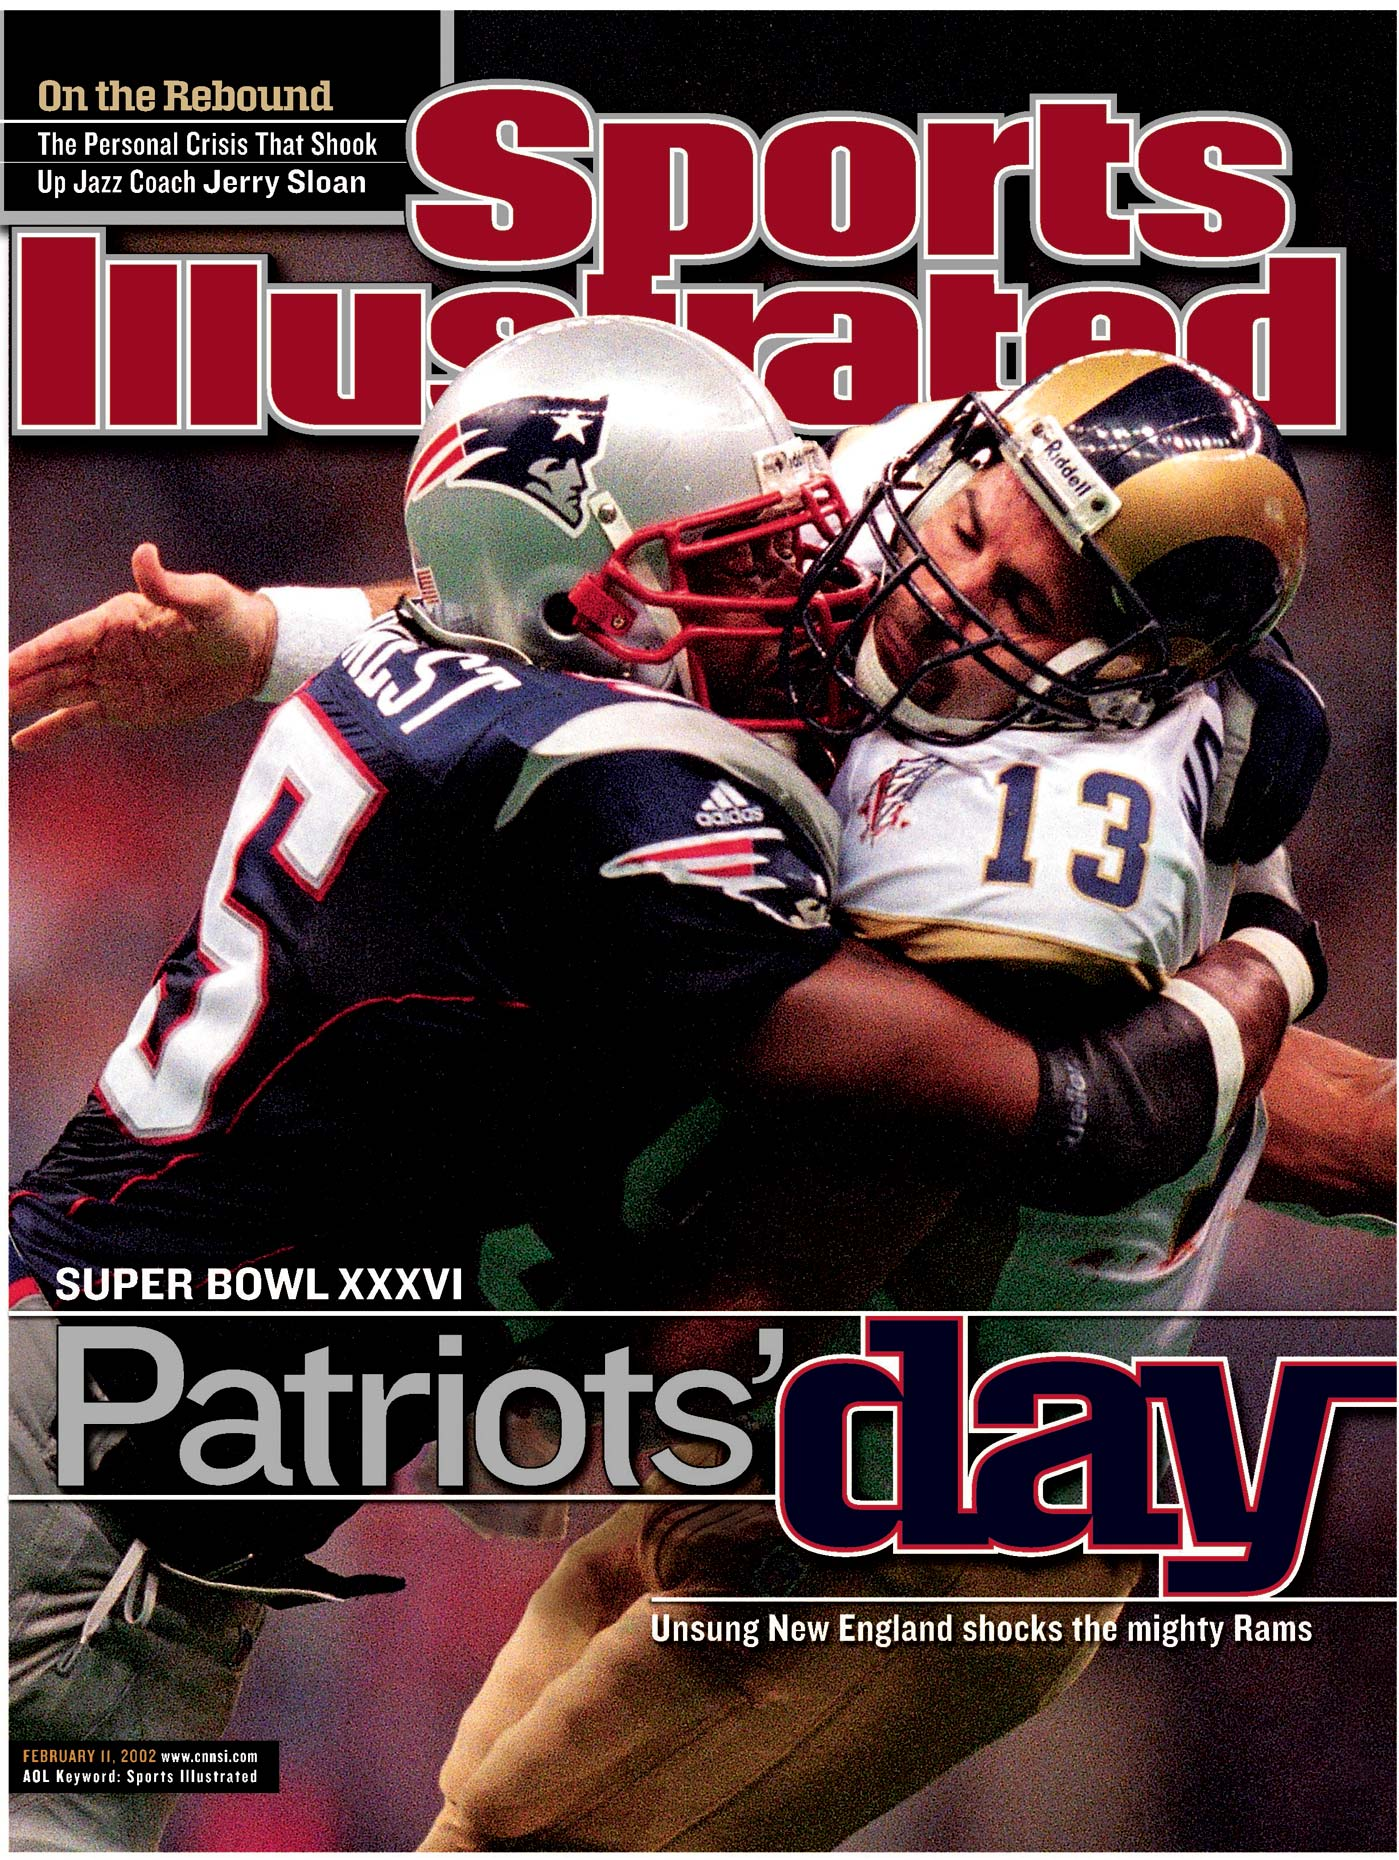 Willie McGinest } Kurt Warner | Super Bowl | Cover of Sports Illustrated